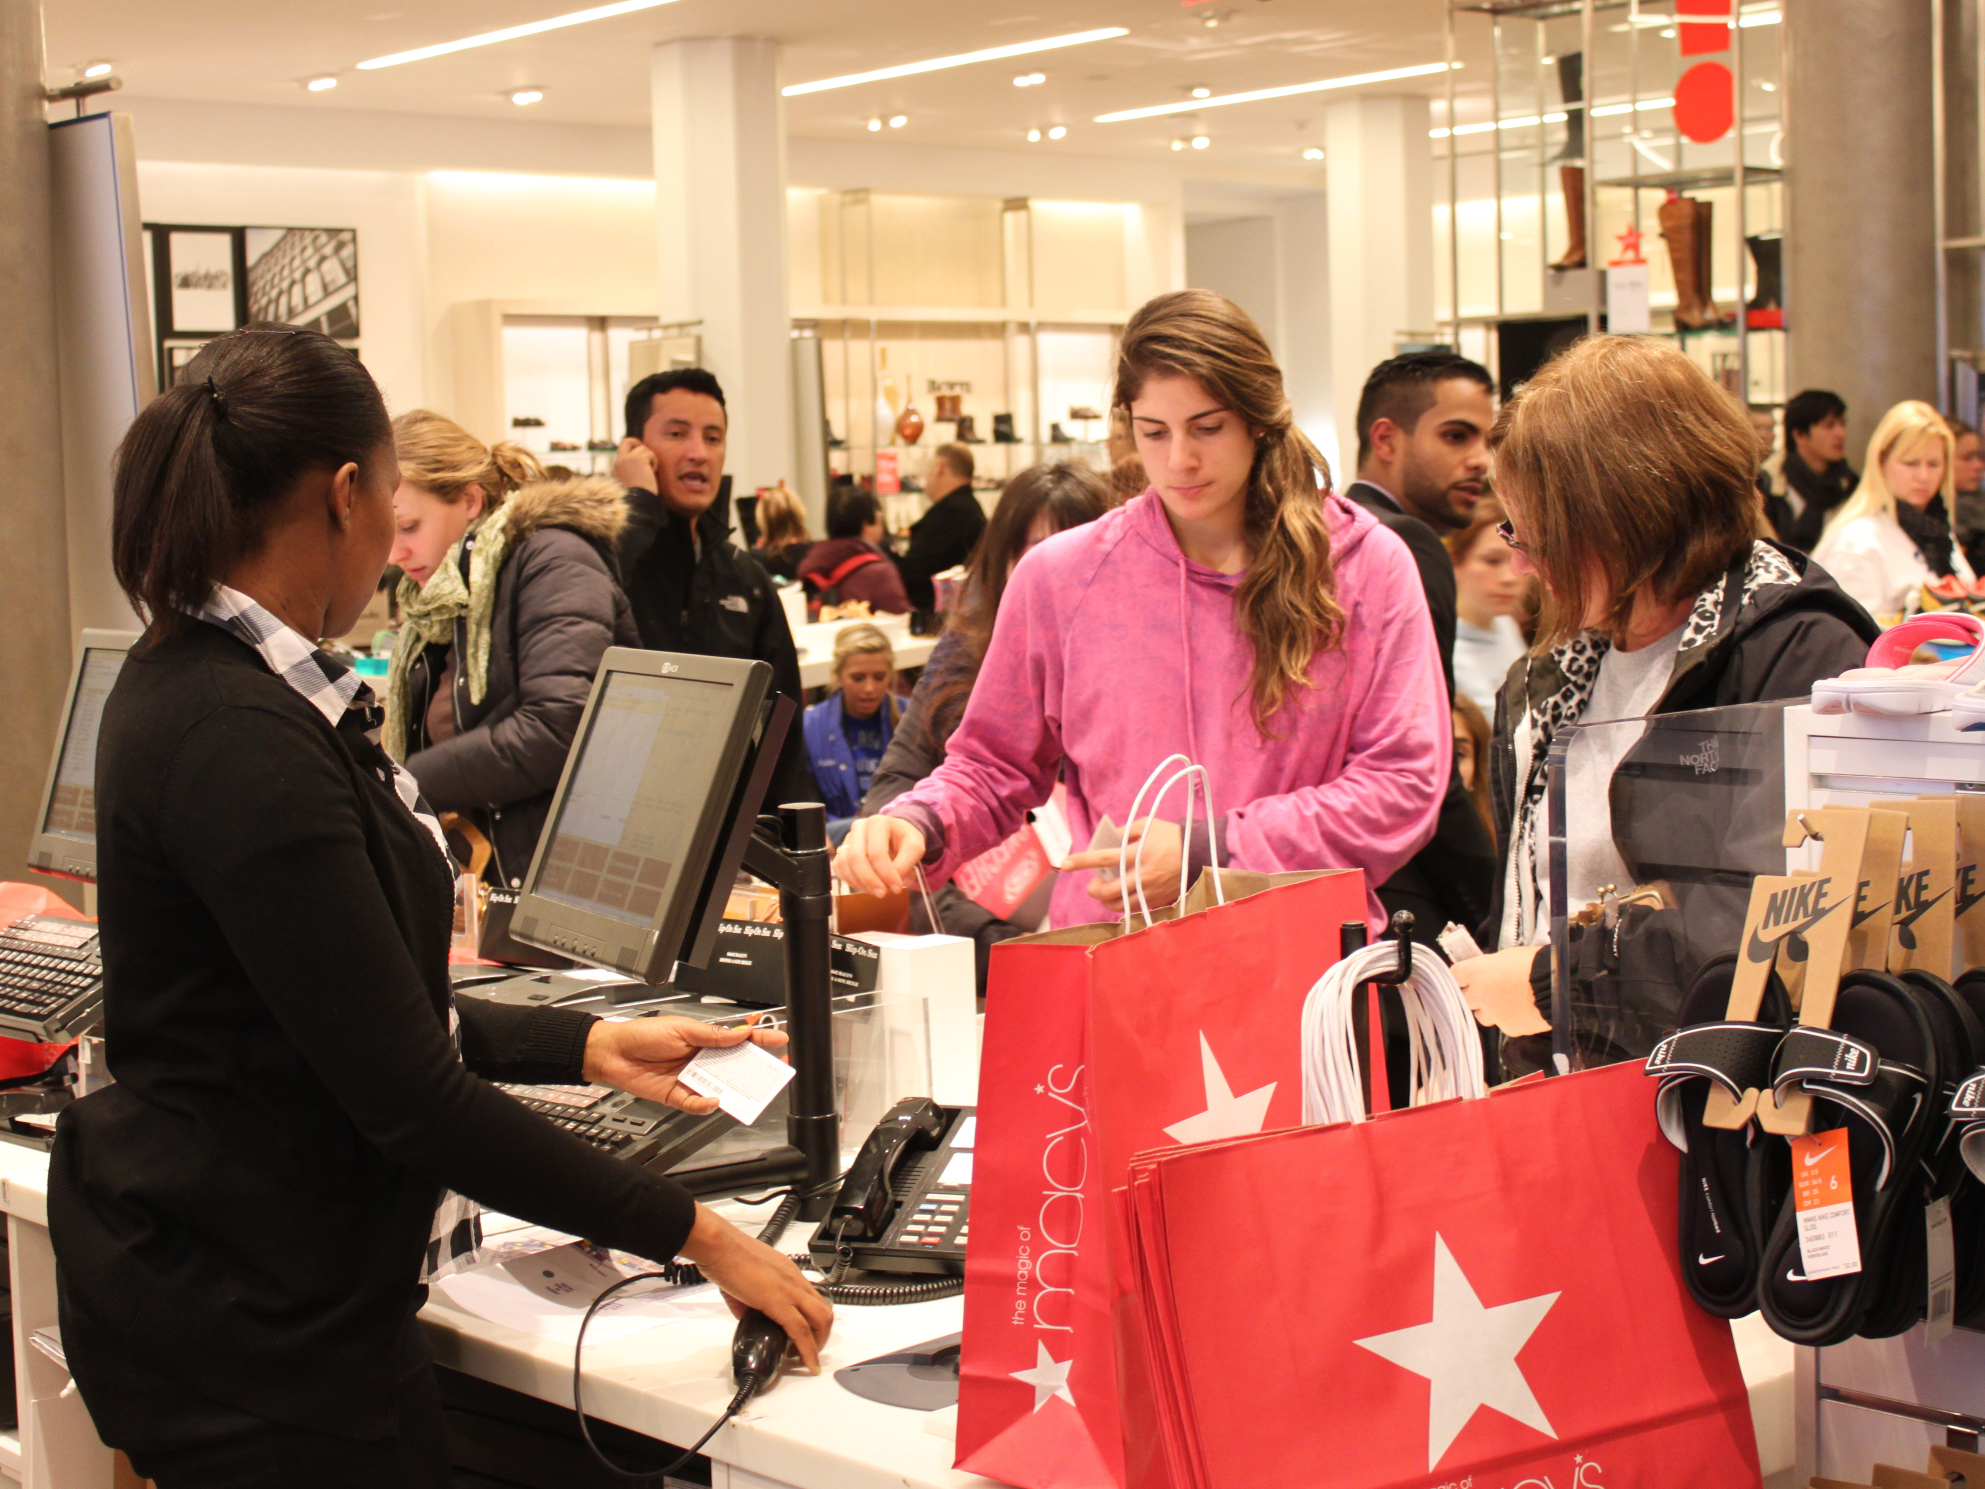 macys-exec-says-people-are-wrong-to-get-pissed-when-marketers-use-their-personal-data